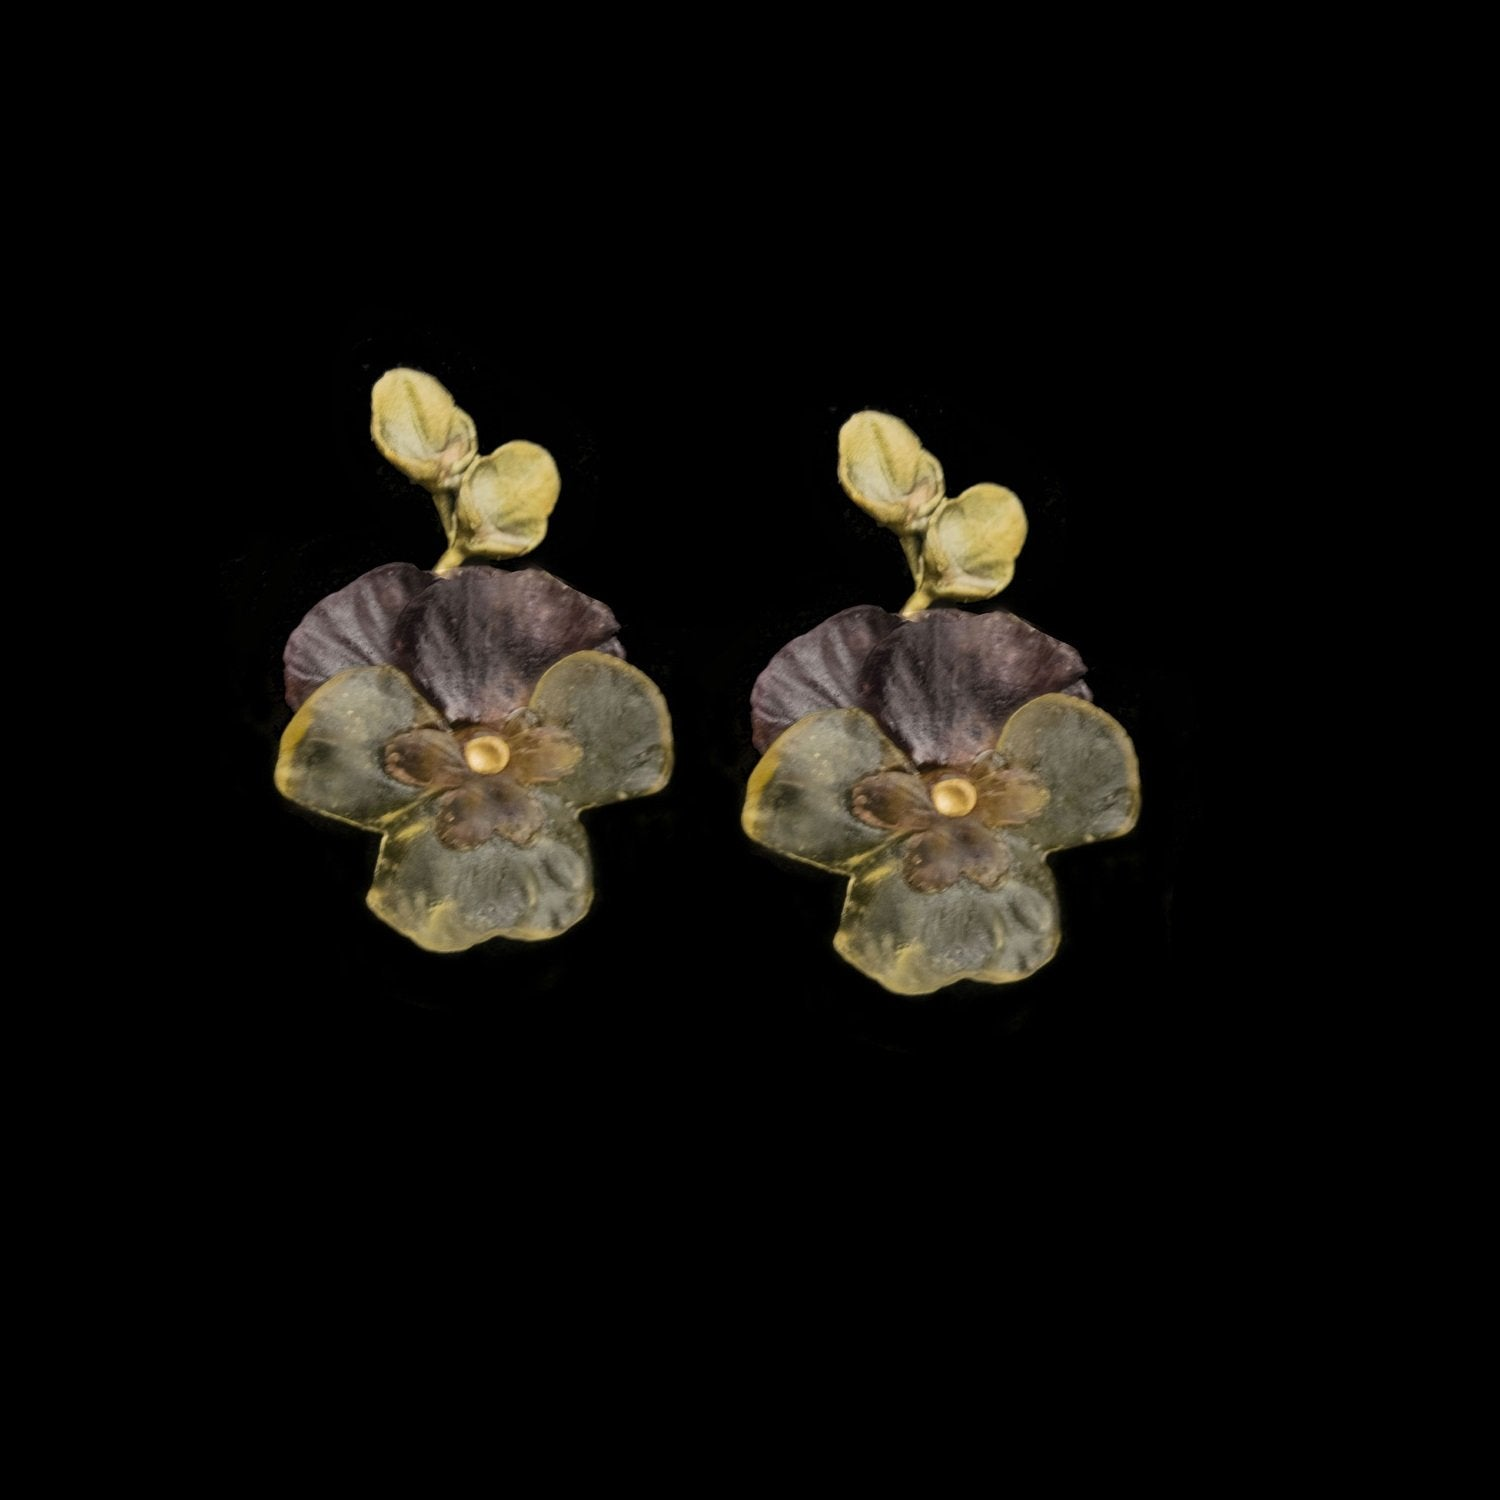 Pansies Earrings - Large Post